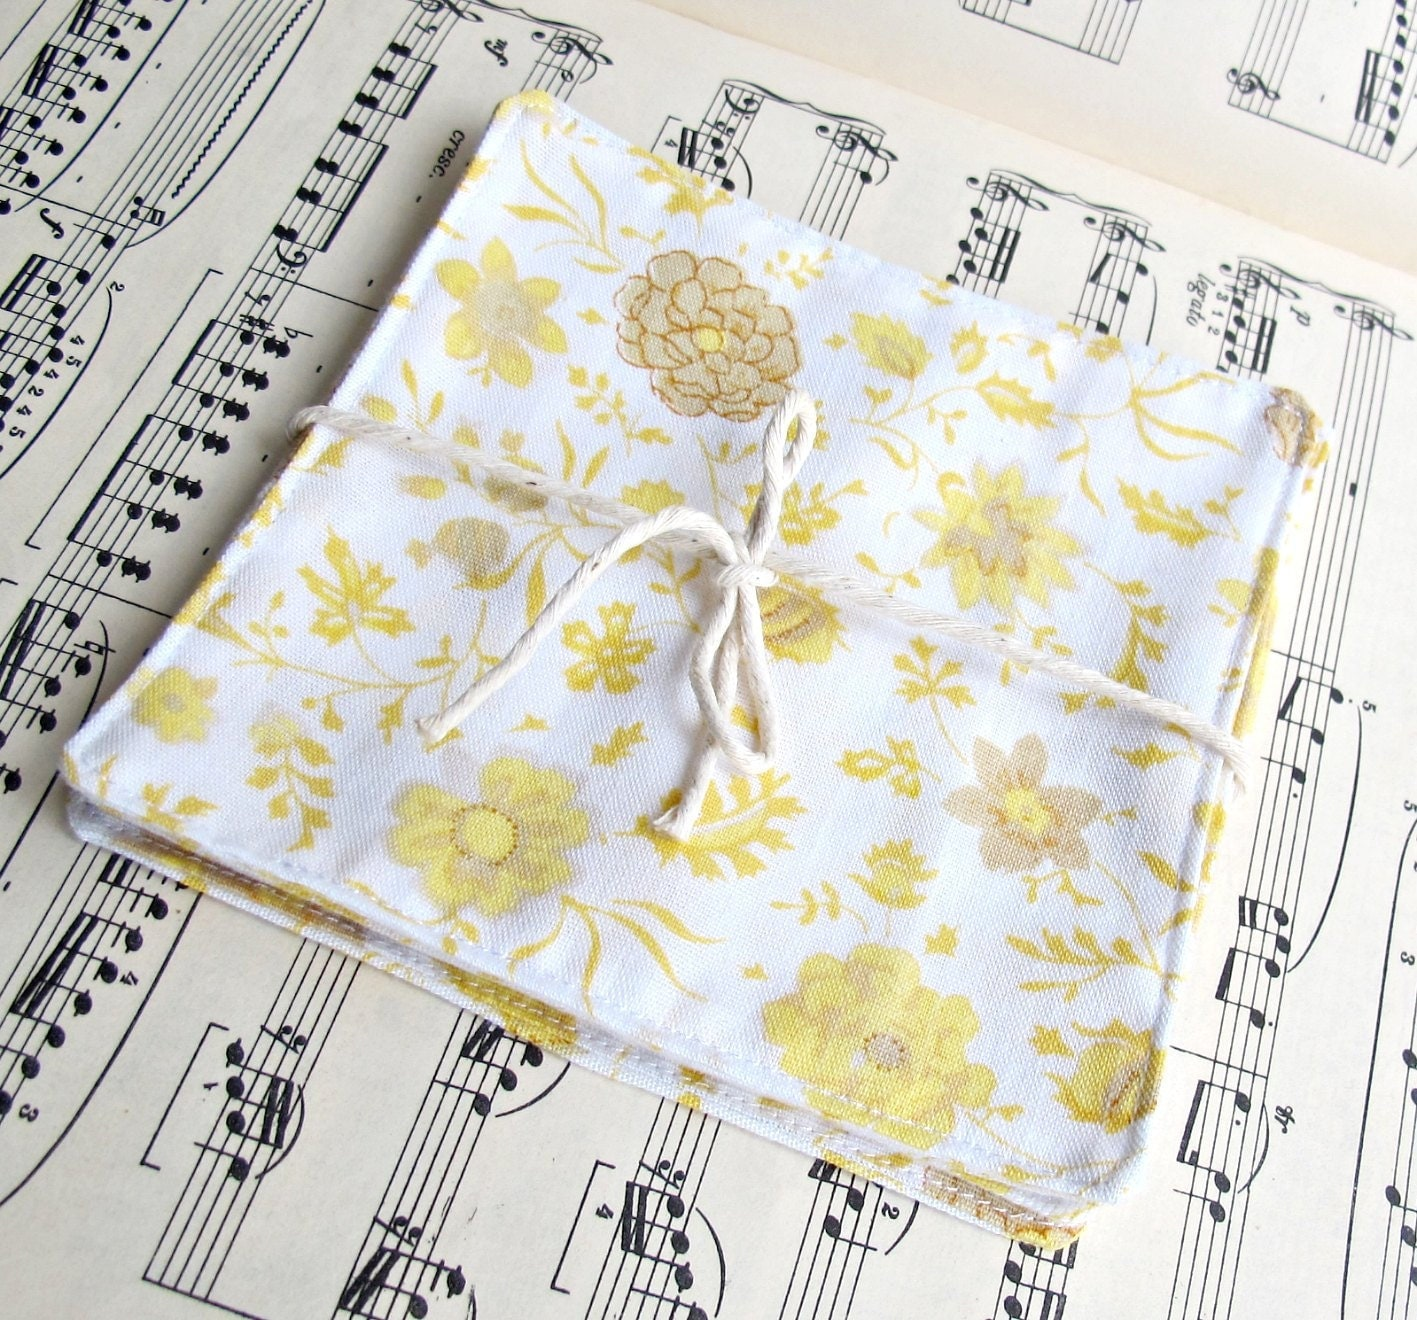 image vintage cocktail napkin set bed linen hannah domum vindemia yellow floral